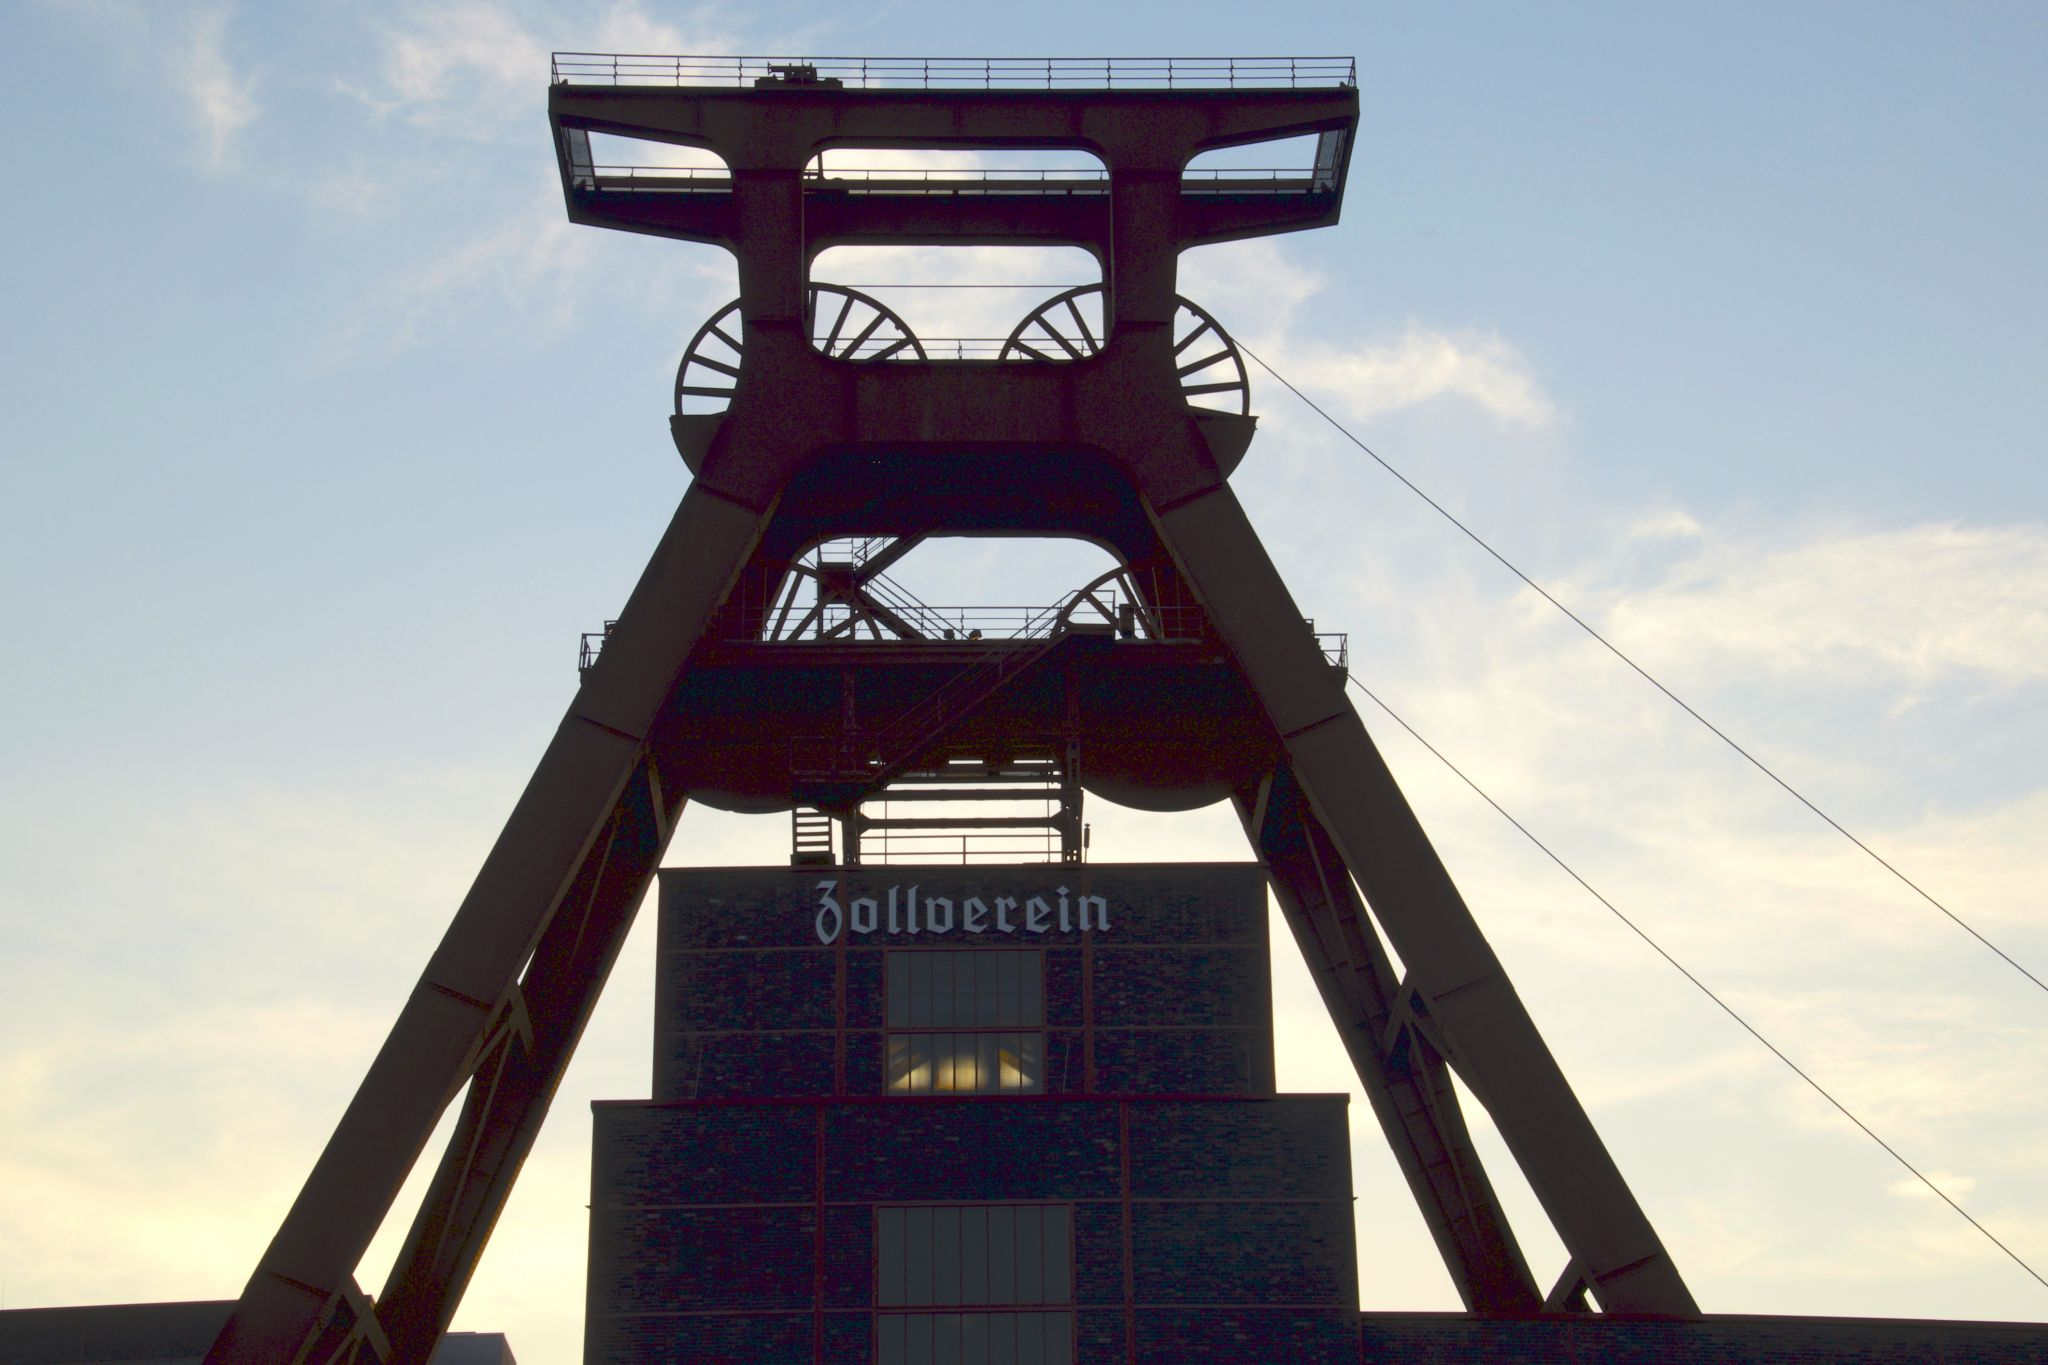 Unesco World Heritage Zollverein Essen, Germany